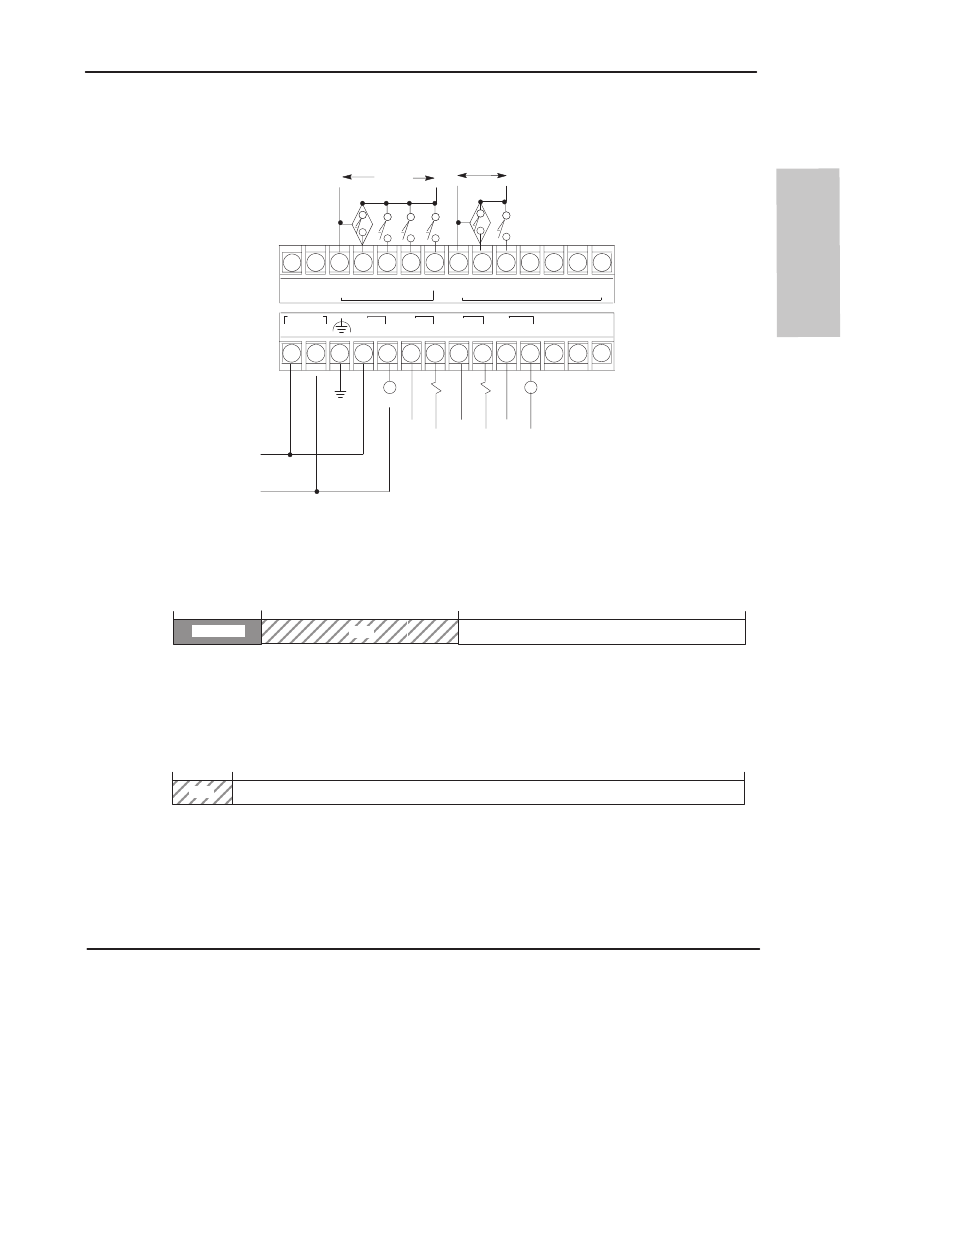 medium resolution of micrologix 1000 wiring diagram wiring libraryhardware preface rockwell automation 1761 micrologix 1000 programmable controllers user